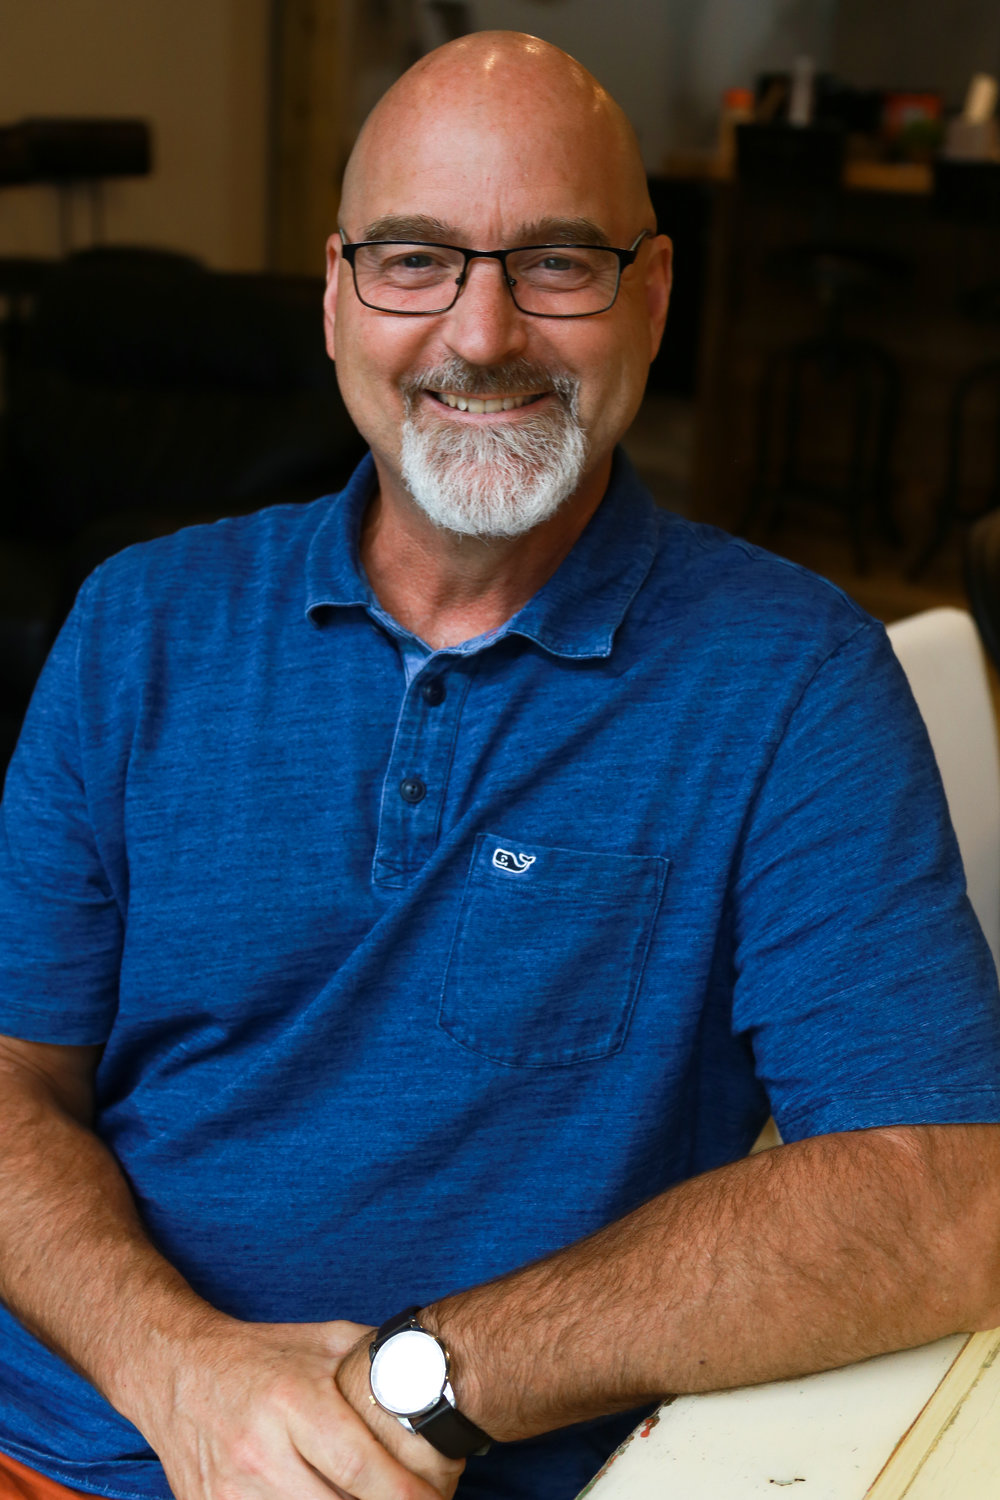 Steve Eklund - Steve Eklund spent 30 years in the investment world using his faith fueled coaching approach that has led to extraordinary results. Steve partners with his daughter Rachel to deliver a seminar that focuses on providing clarity, direction and movement to attendees.